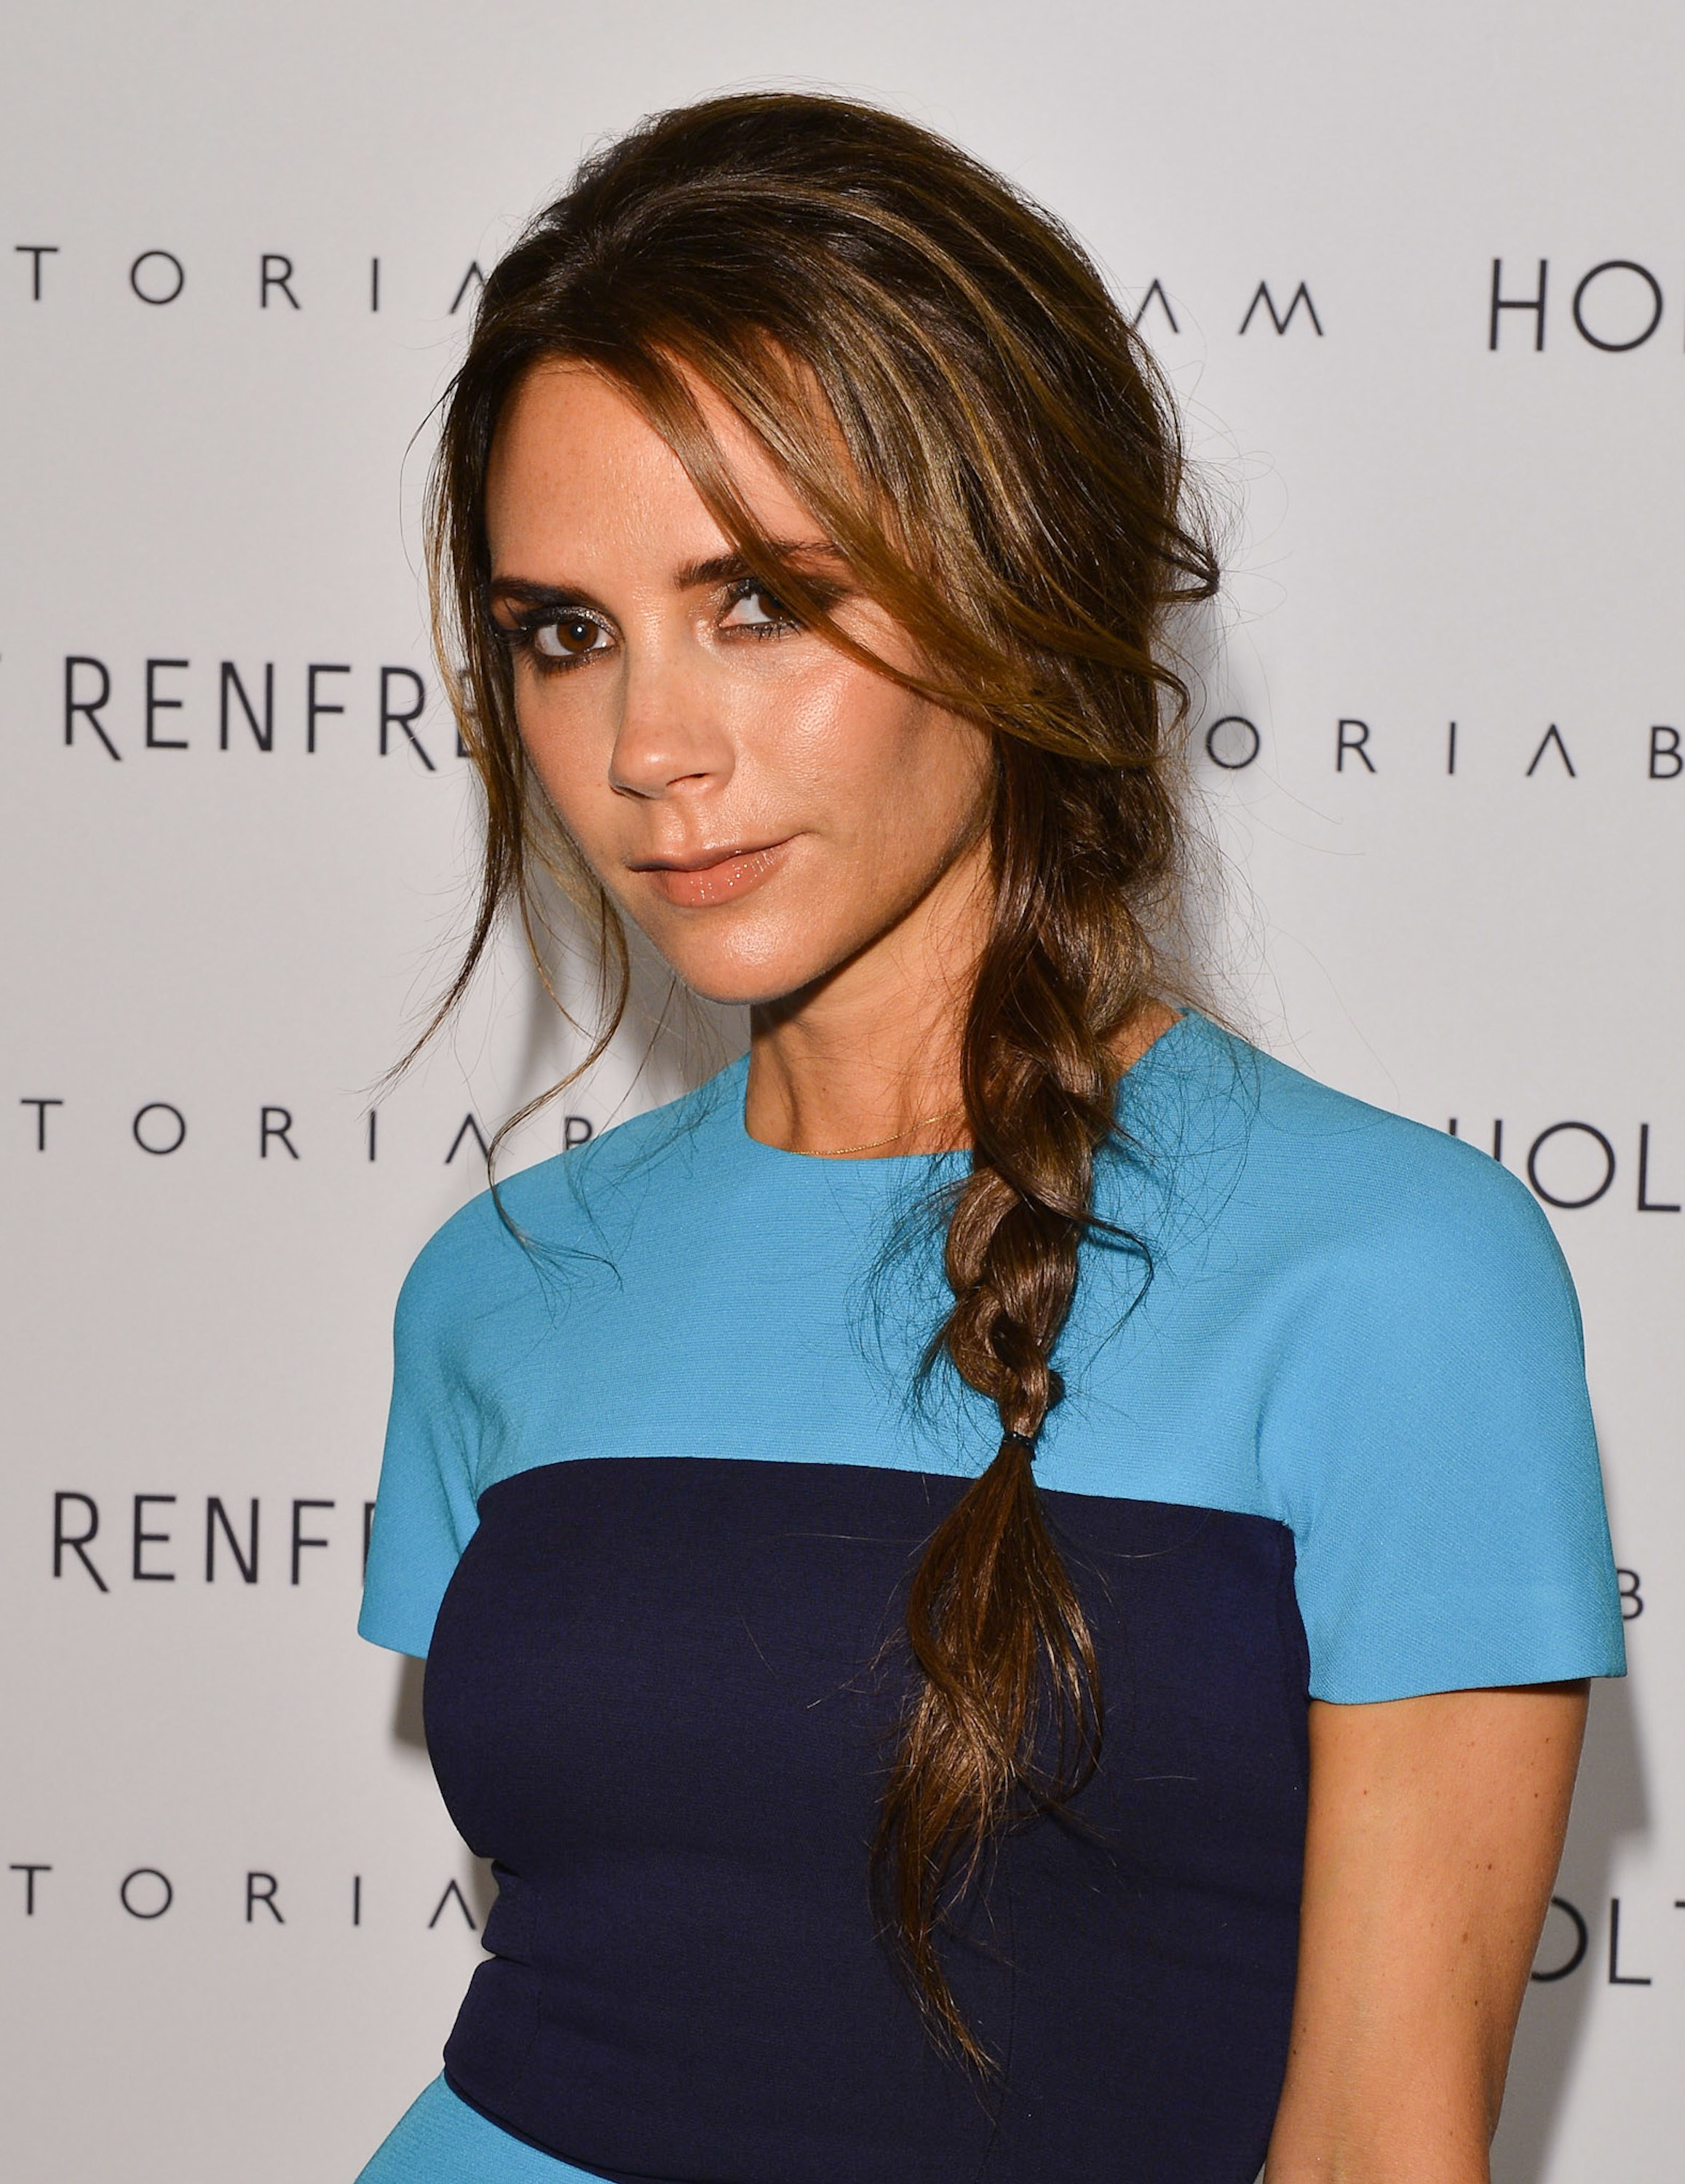 Victoria Beckham brunette hair colors